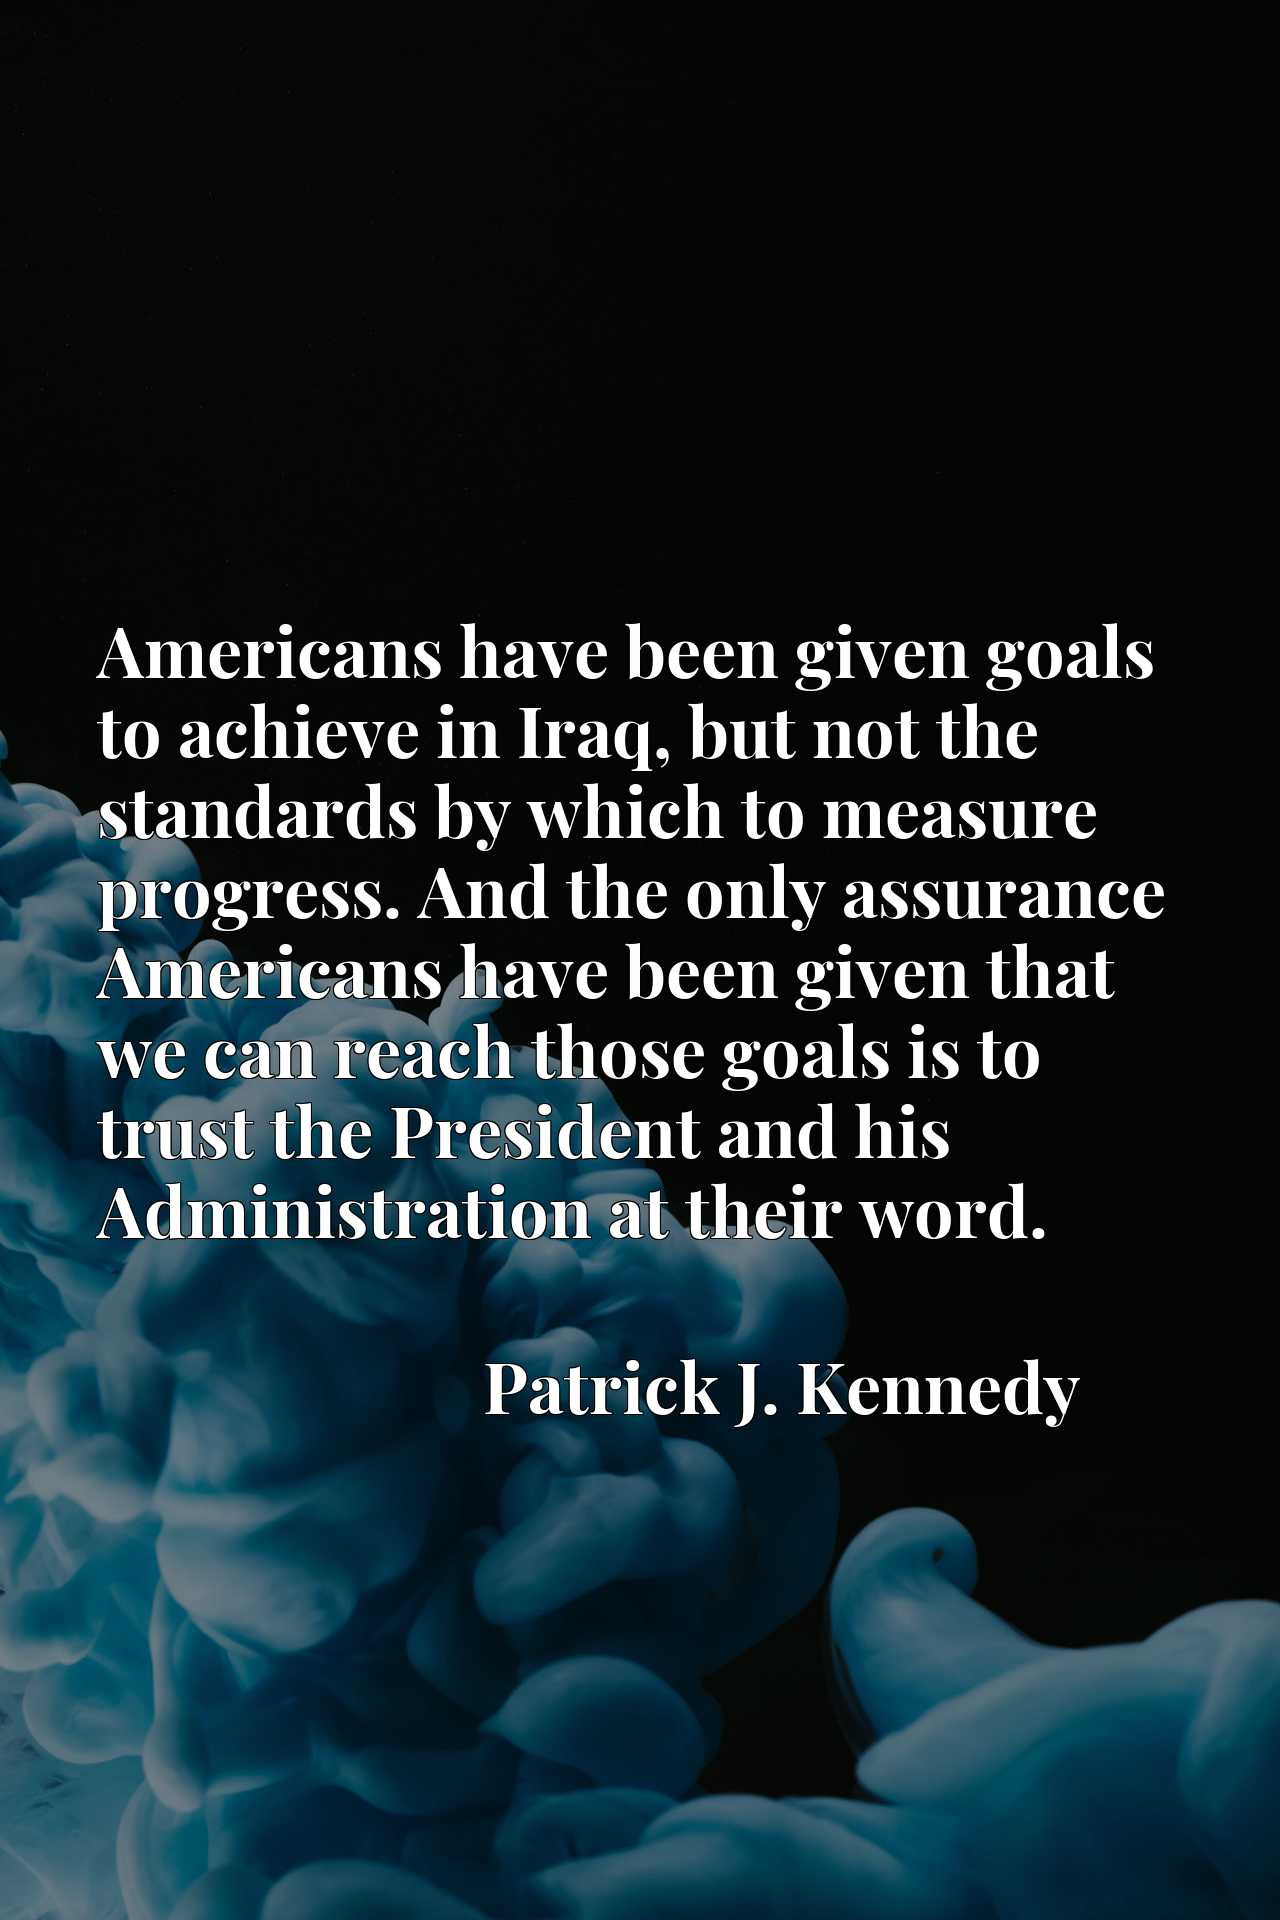 Americans have been given goals to achieve in Iraq, but not the standards by which to measure progress. And the only assurance Americans have been given that we can reach those goals is to trust the President and his Administration at their word.